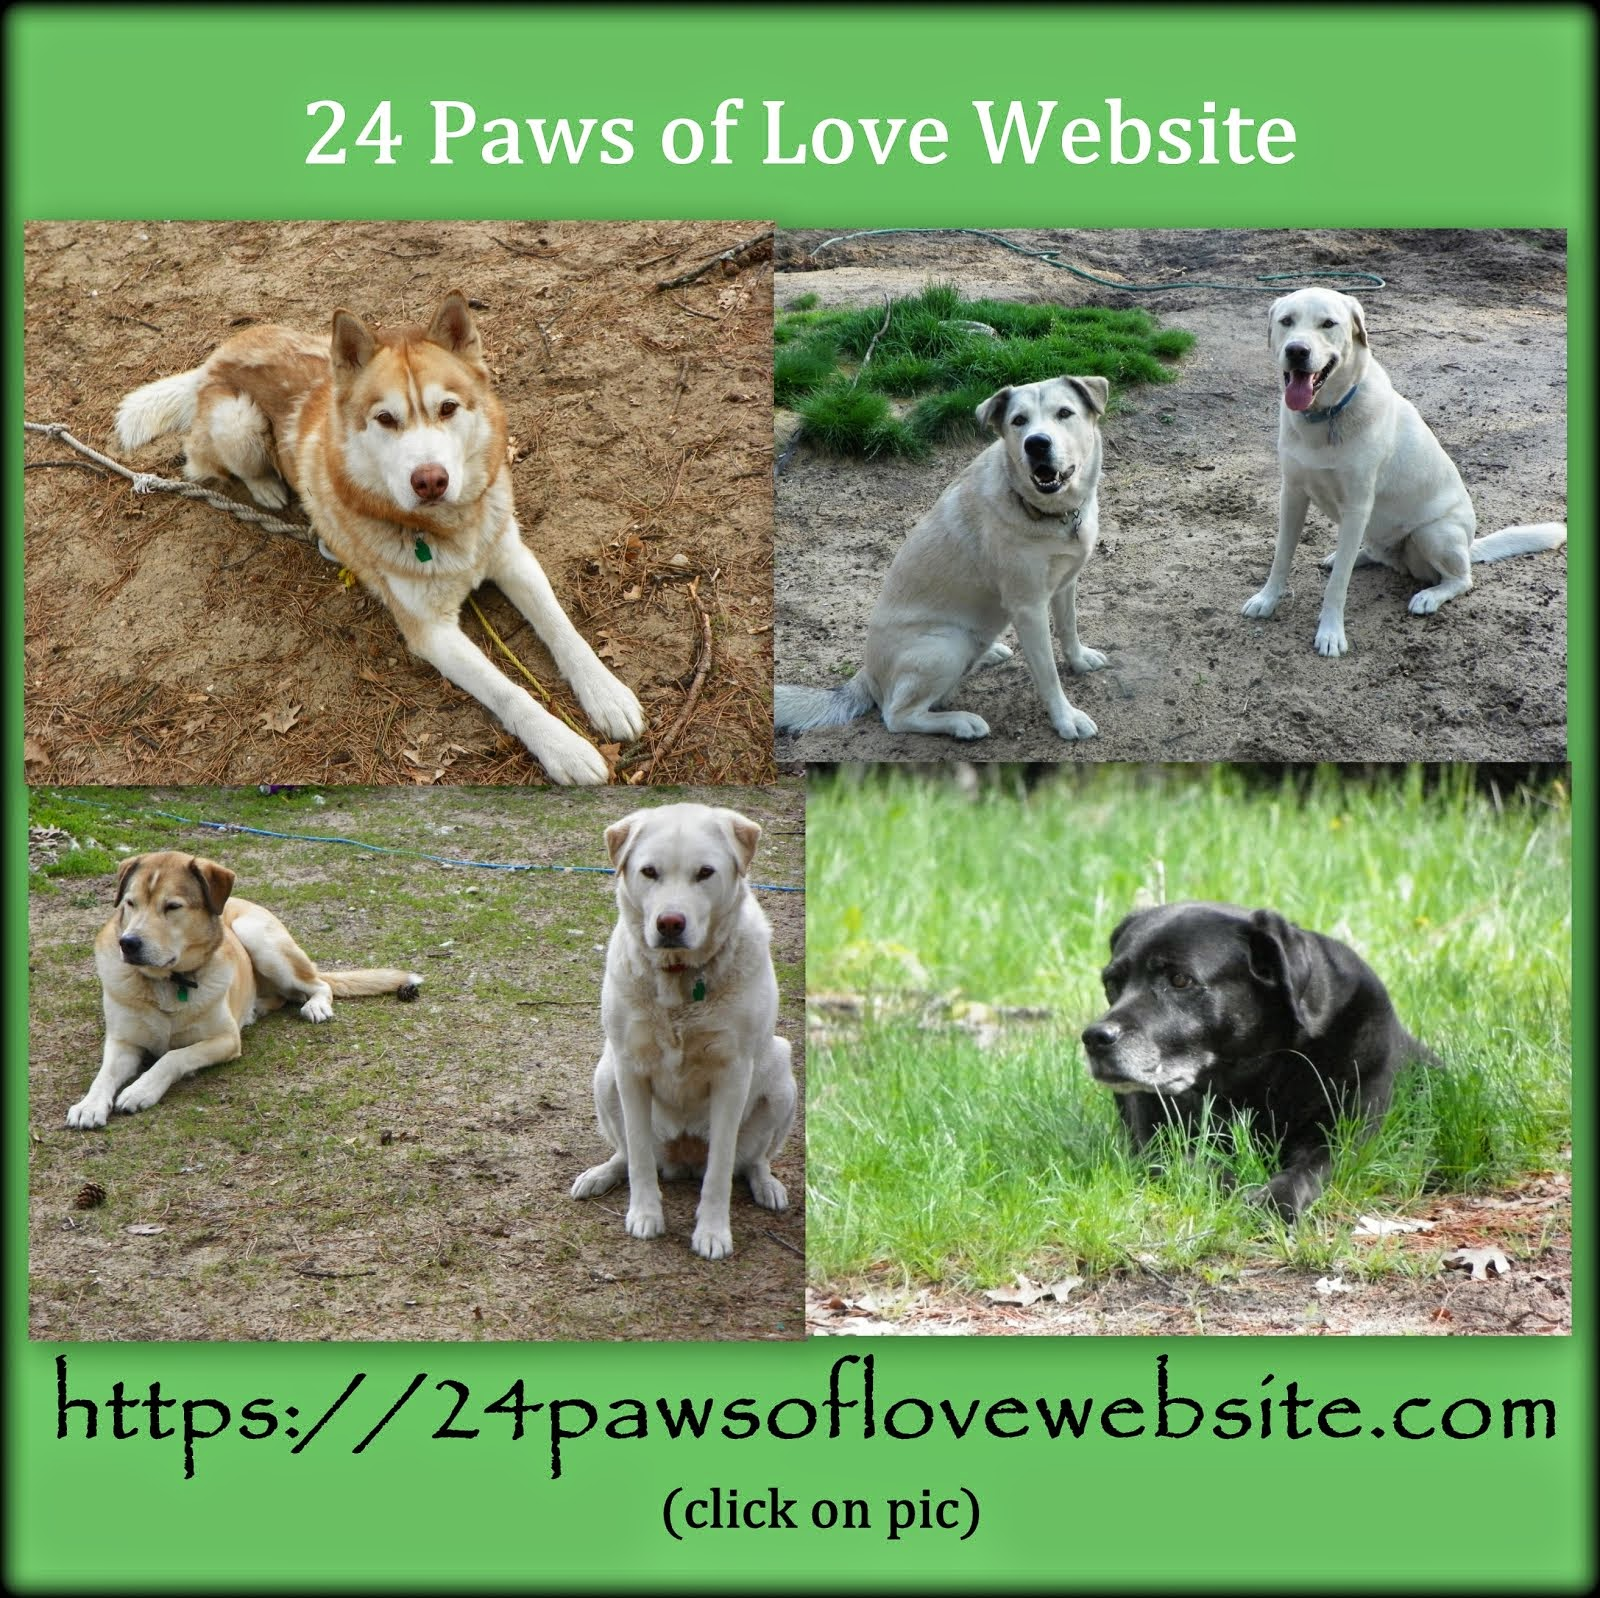 Visit the 24 Paws of Love Website